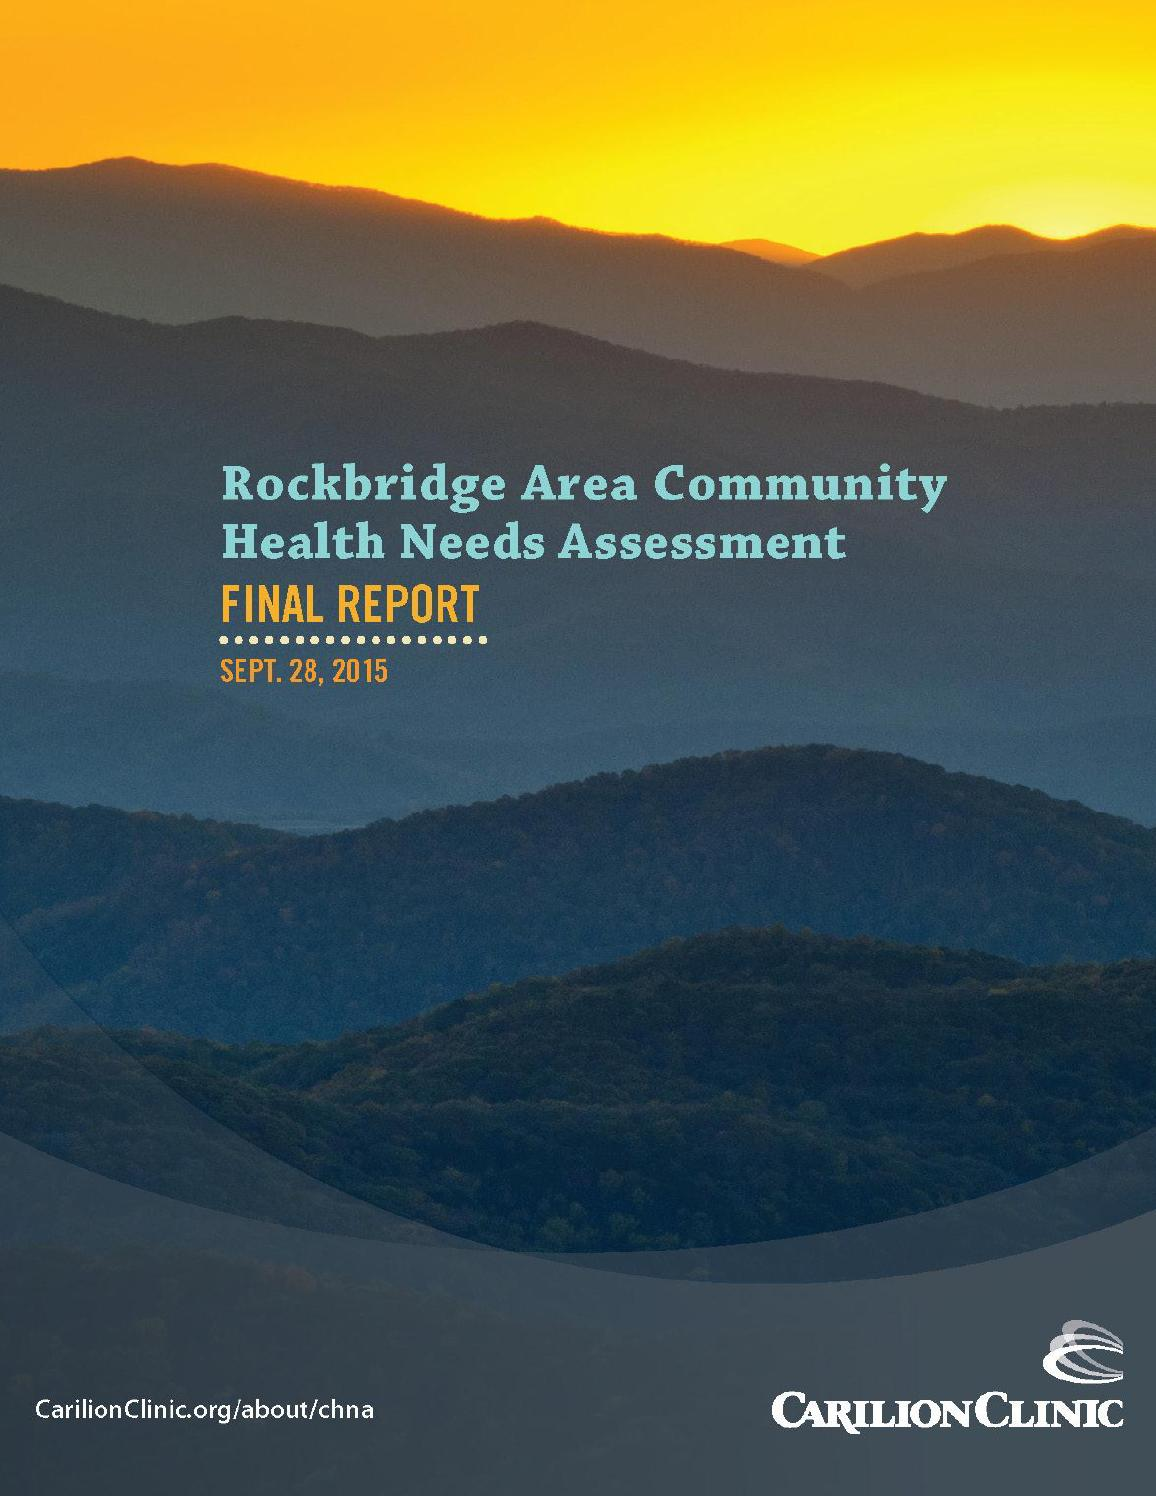 Rockbridge Area Community Health Needs Assessment By Carilion Clinic   Issuu